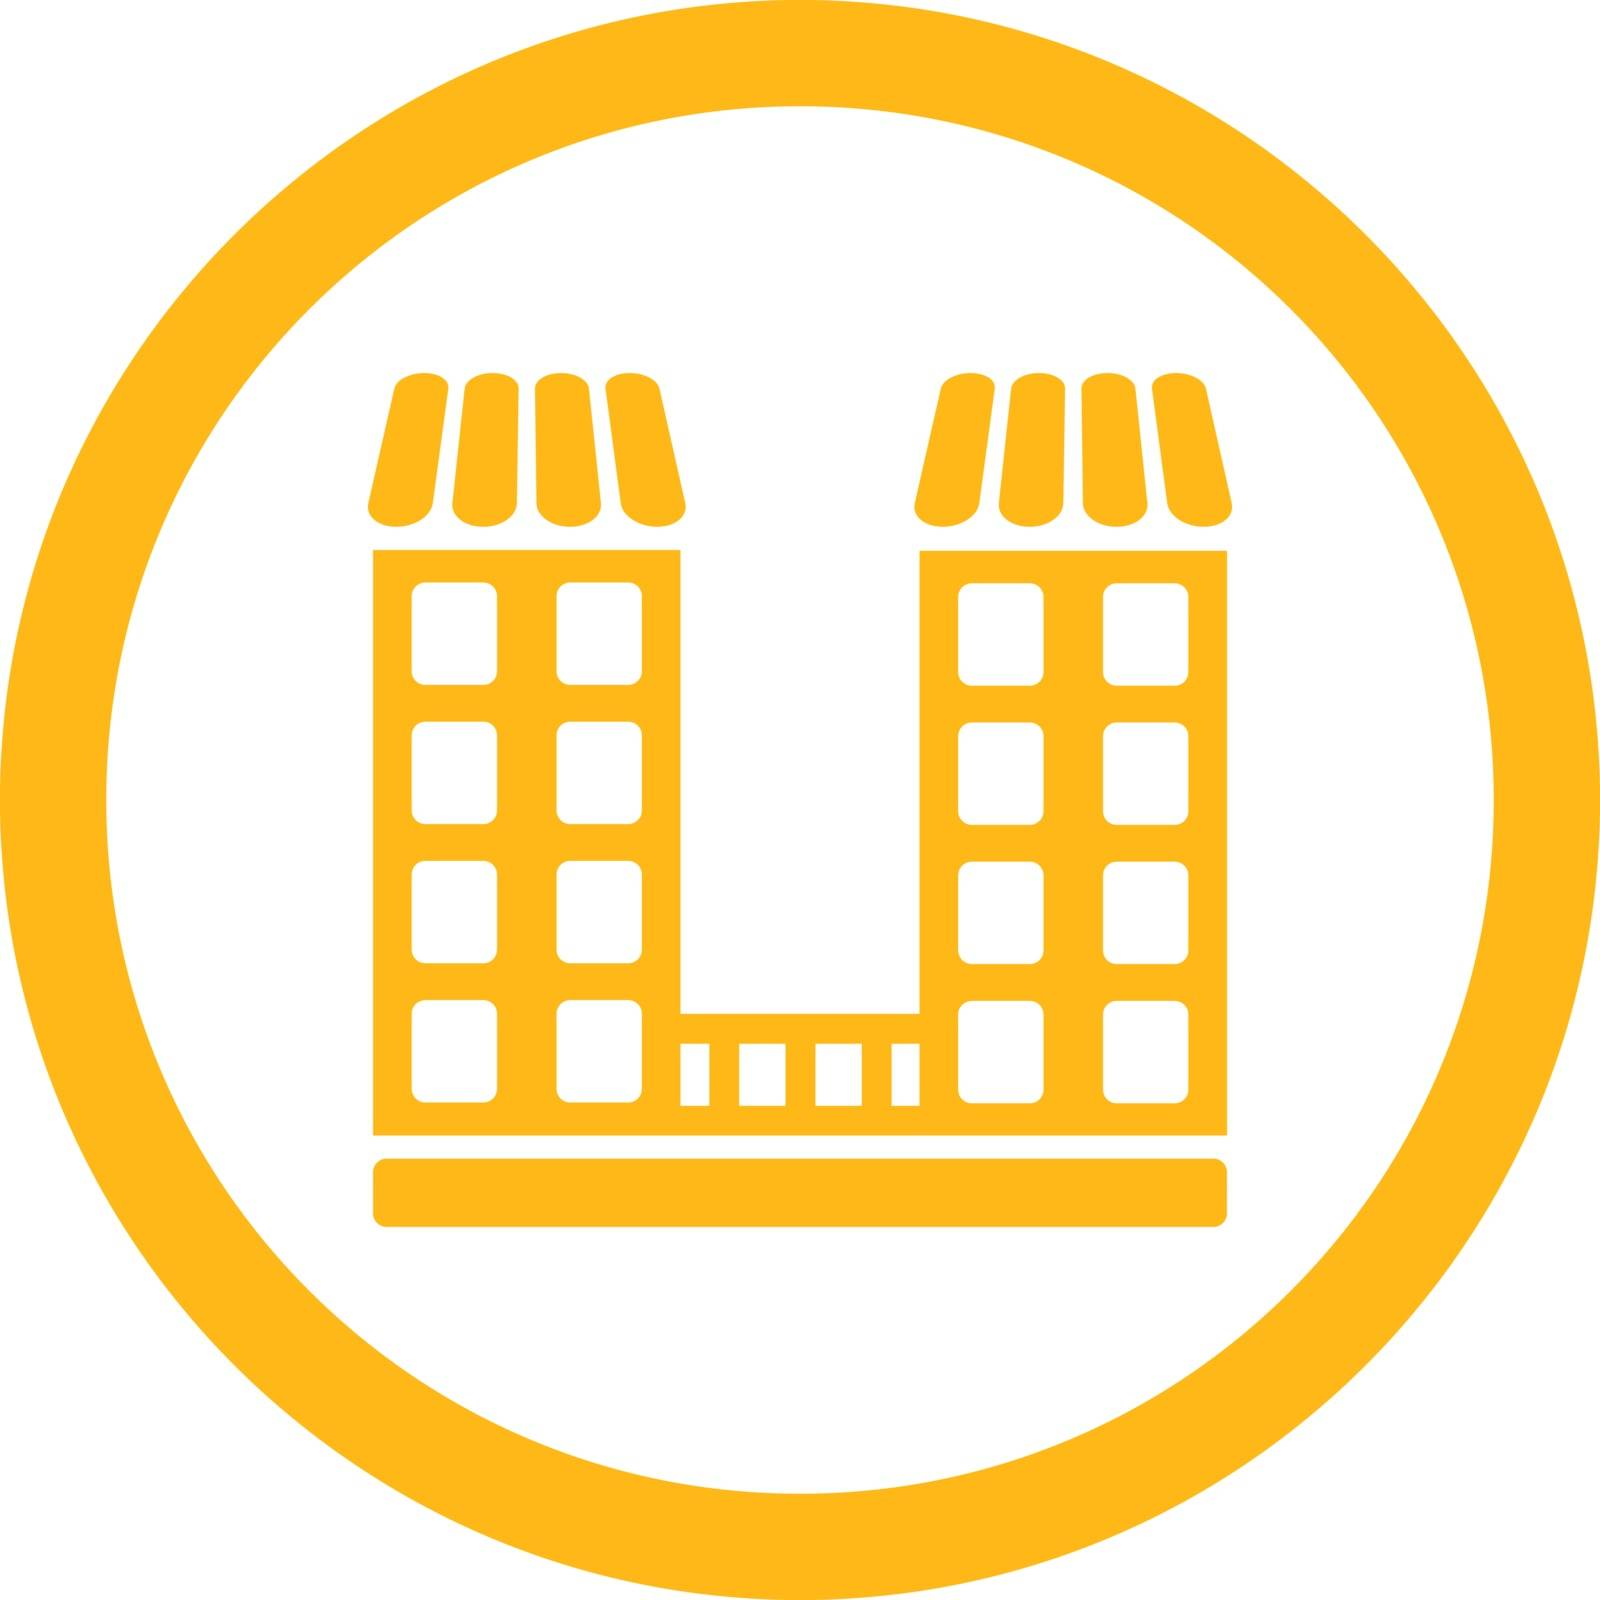 Company vector icon. This flat rounded symbol uses yellow color and isolated on a white background.